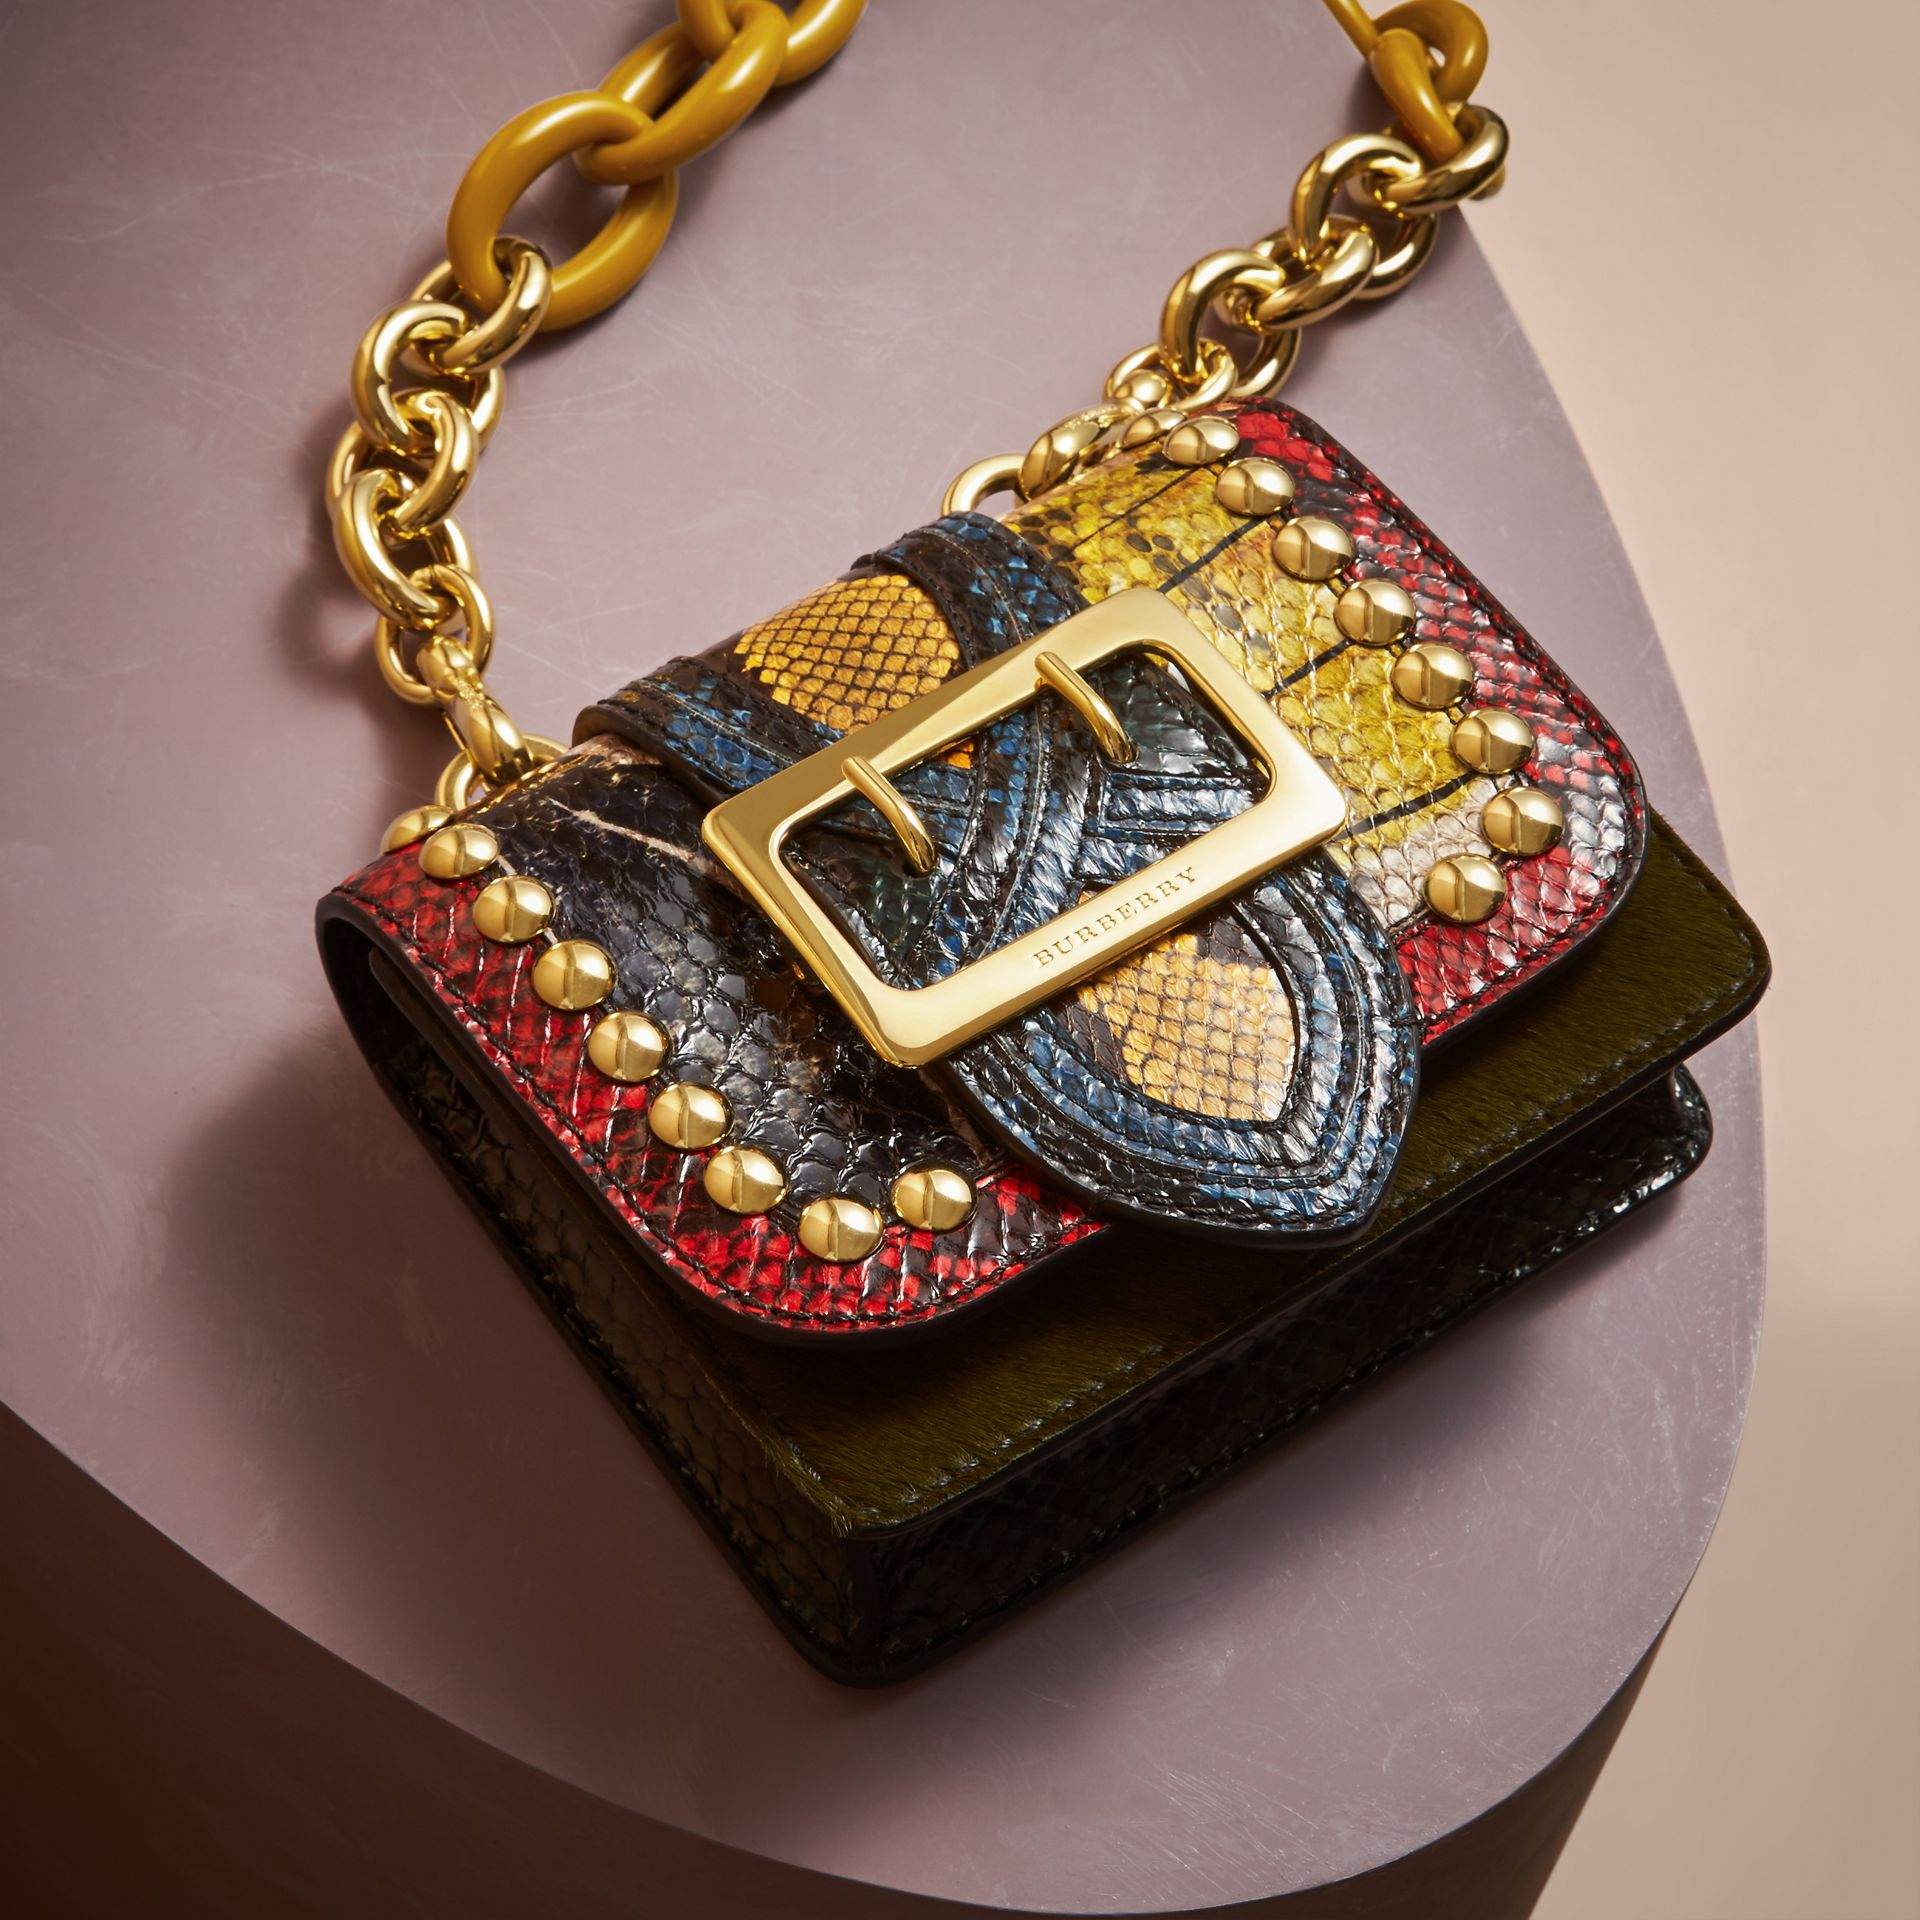 Borsa The Buckle mini quadrata in cavallino e pelle di serpente con borchie - immagine della galleria 6